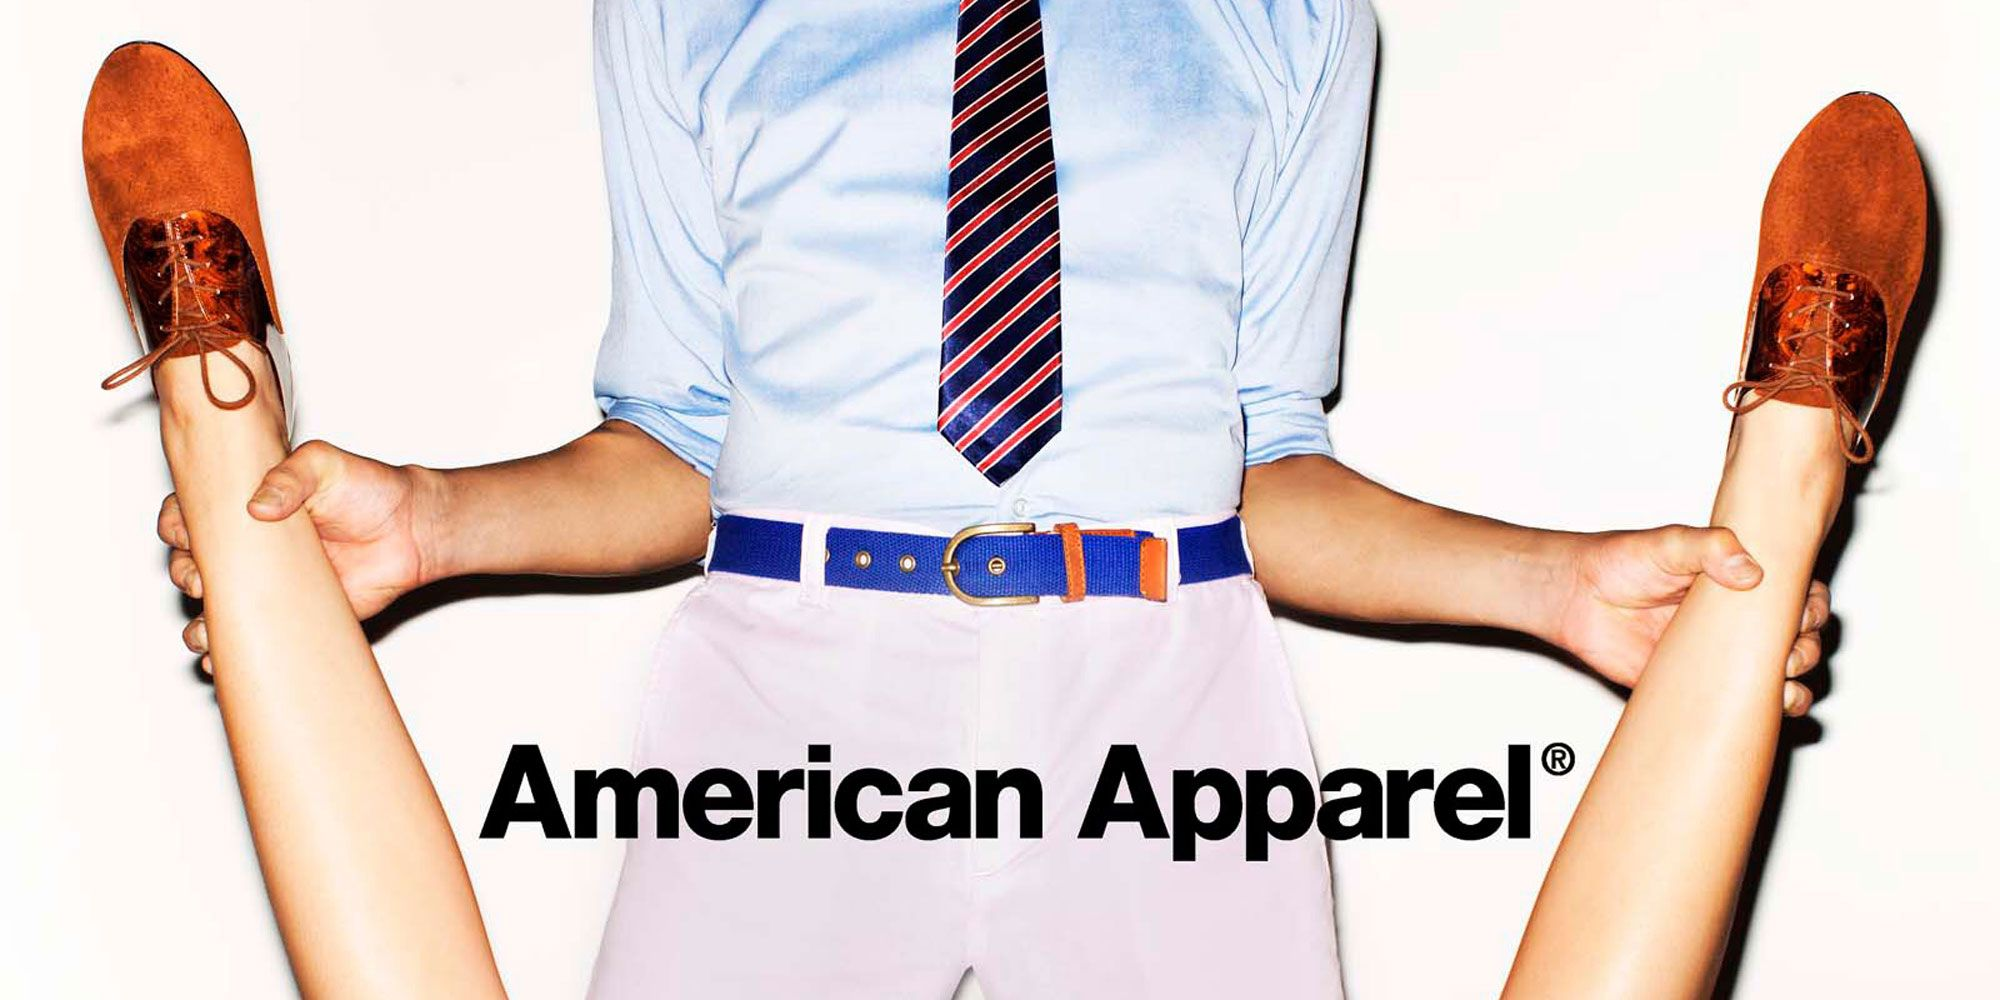 American Apparent Or Porn the nsfw history of american apparel's ads